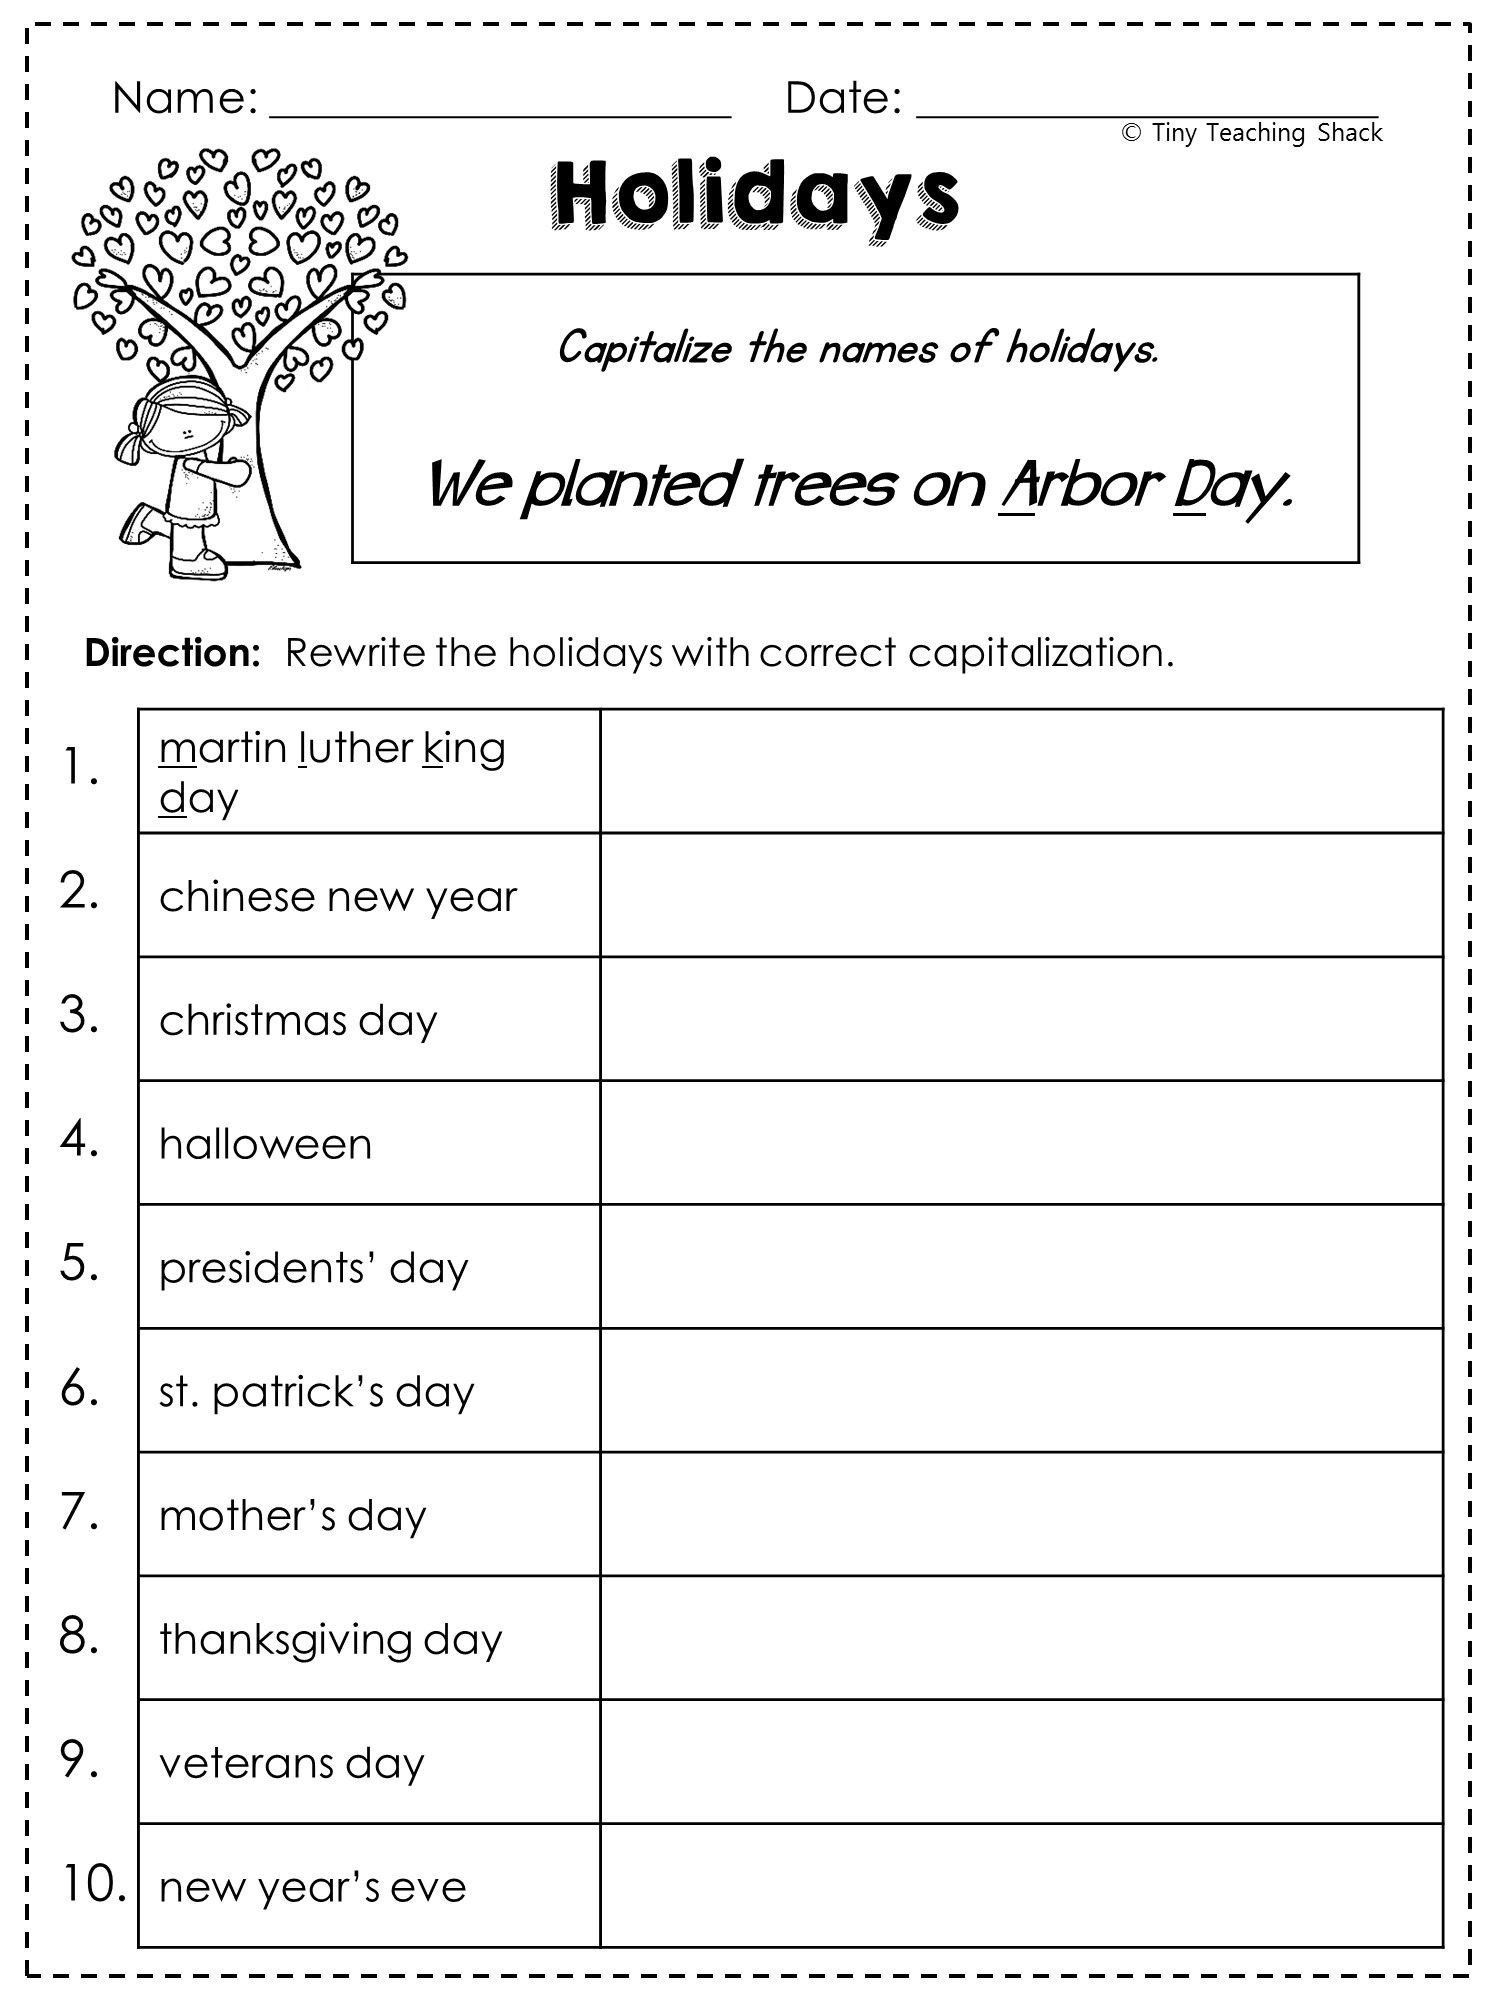 Pin On Worksheets For All Grade Levels